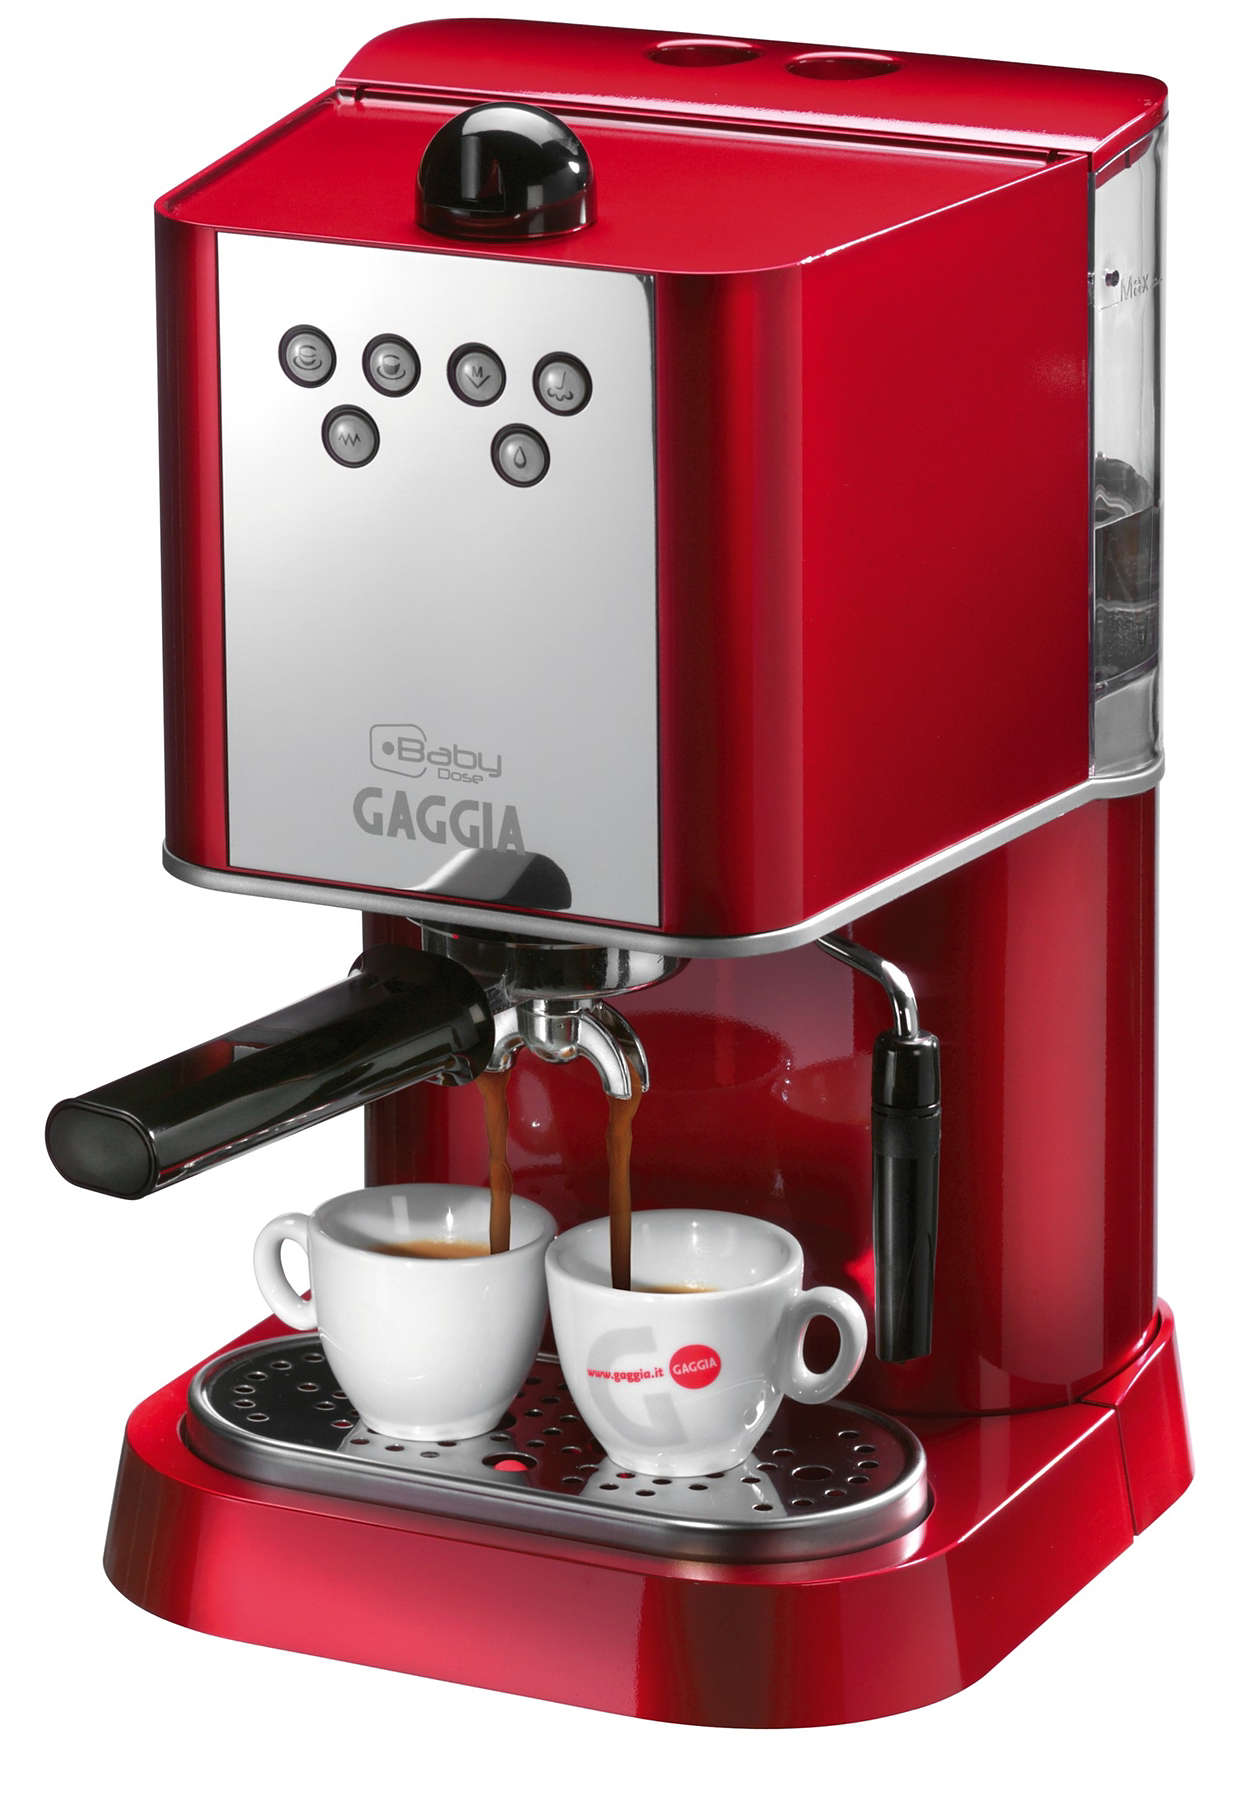 GAGGIA NEW BABY 06 DOSE RED METALLIC UK